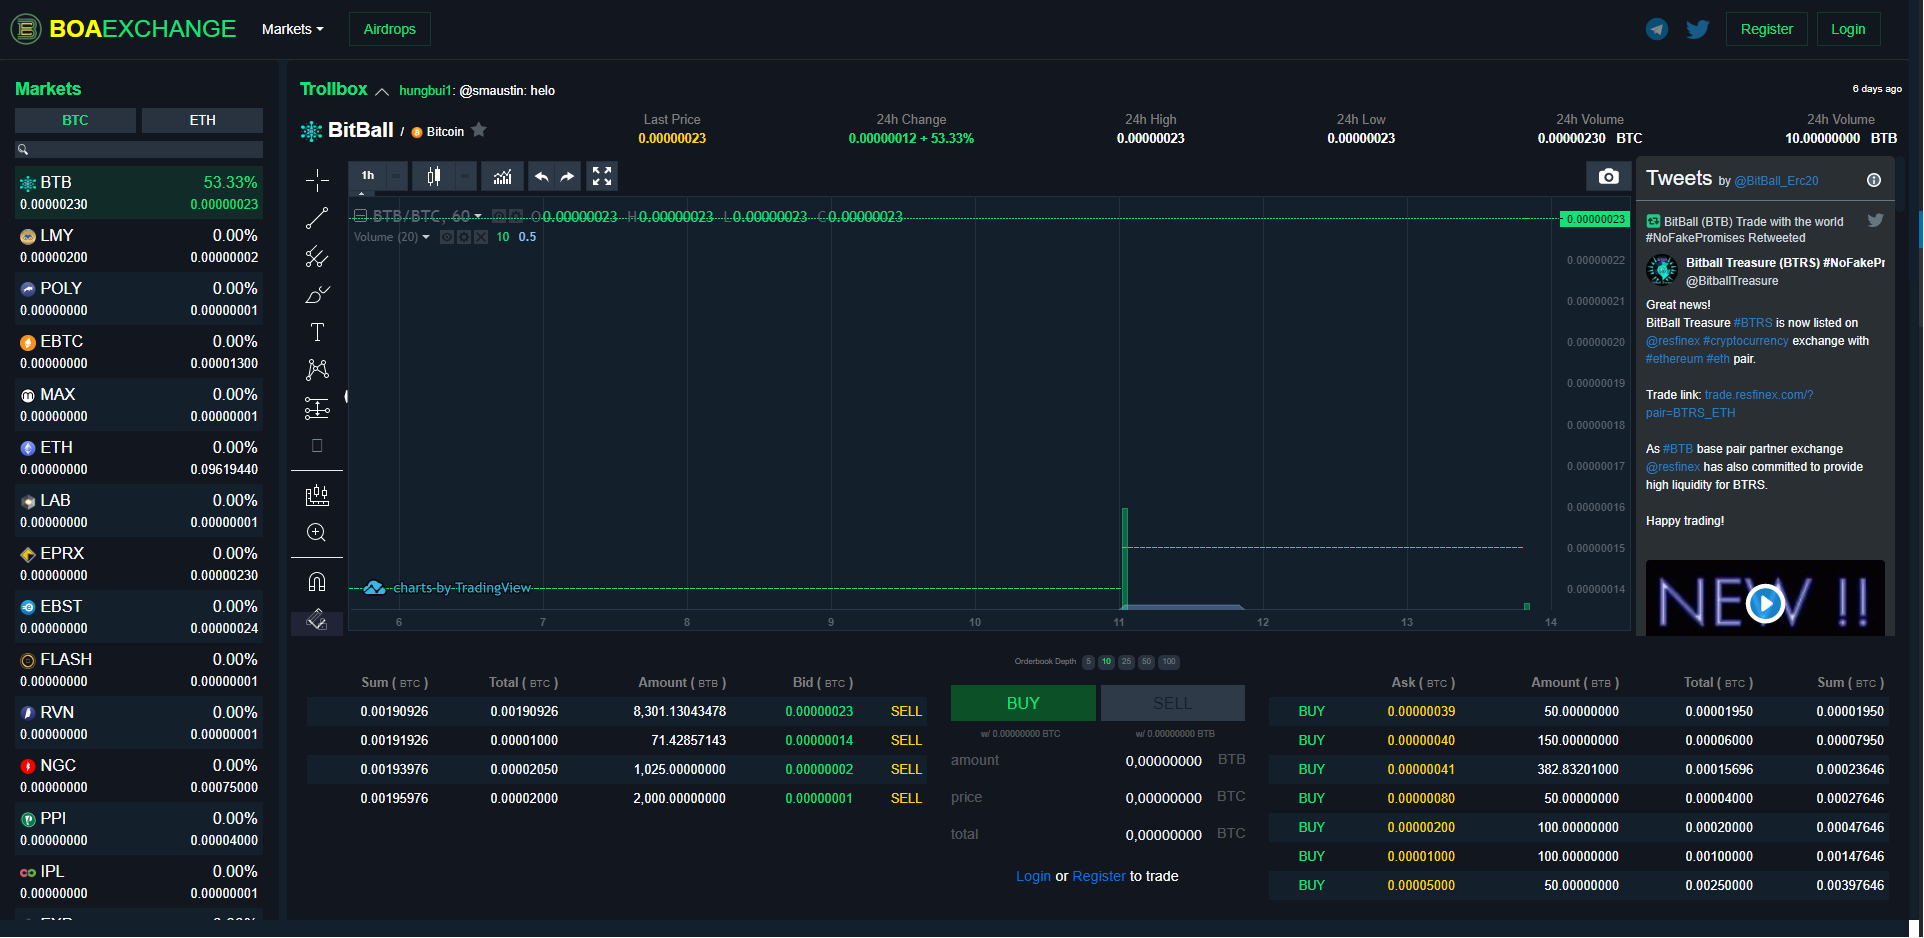 BOA Exchange Trading View